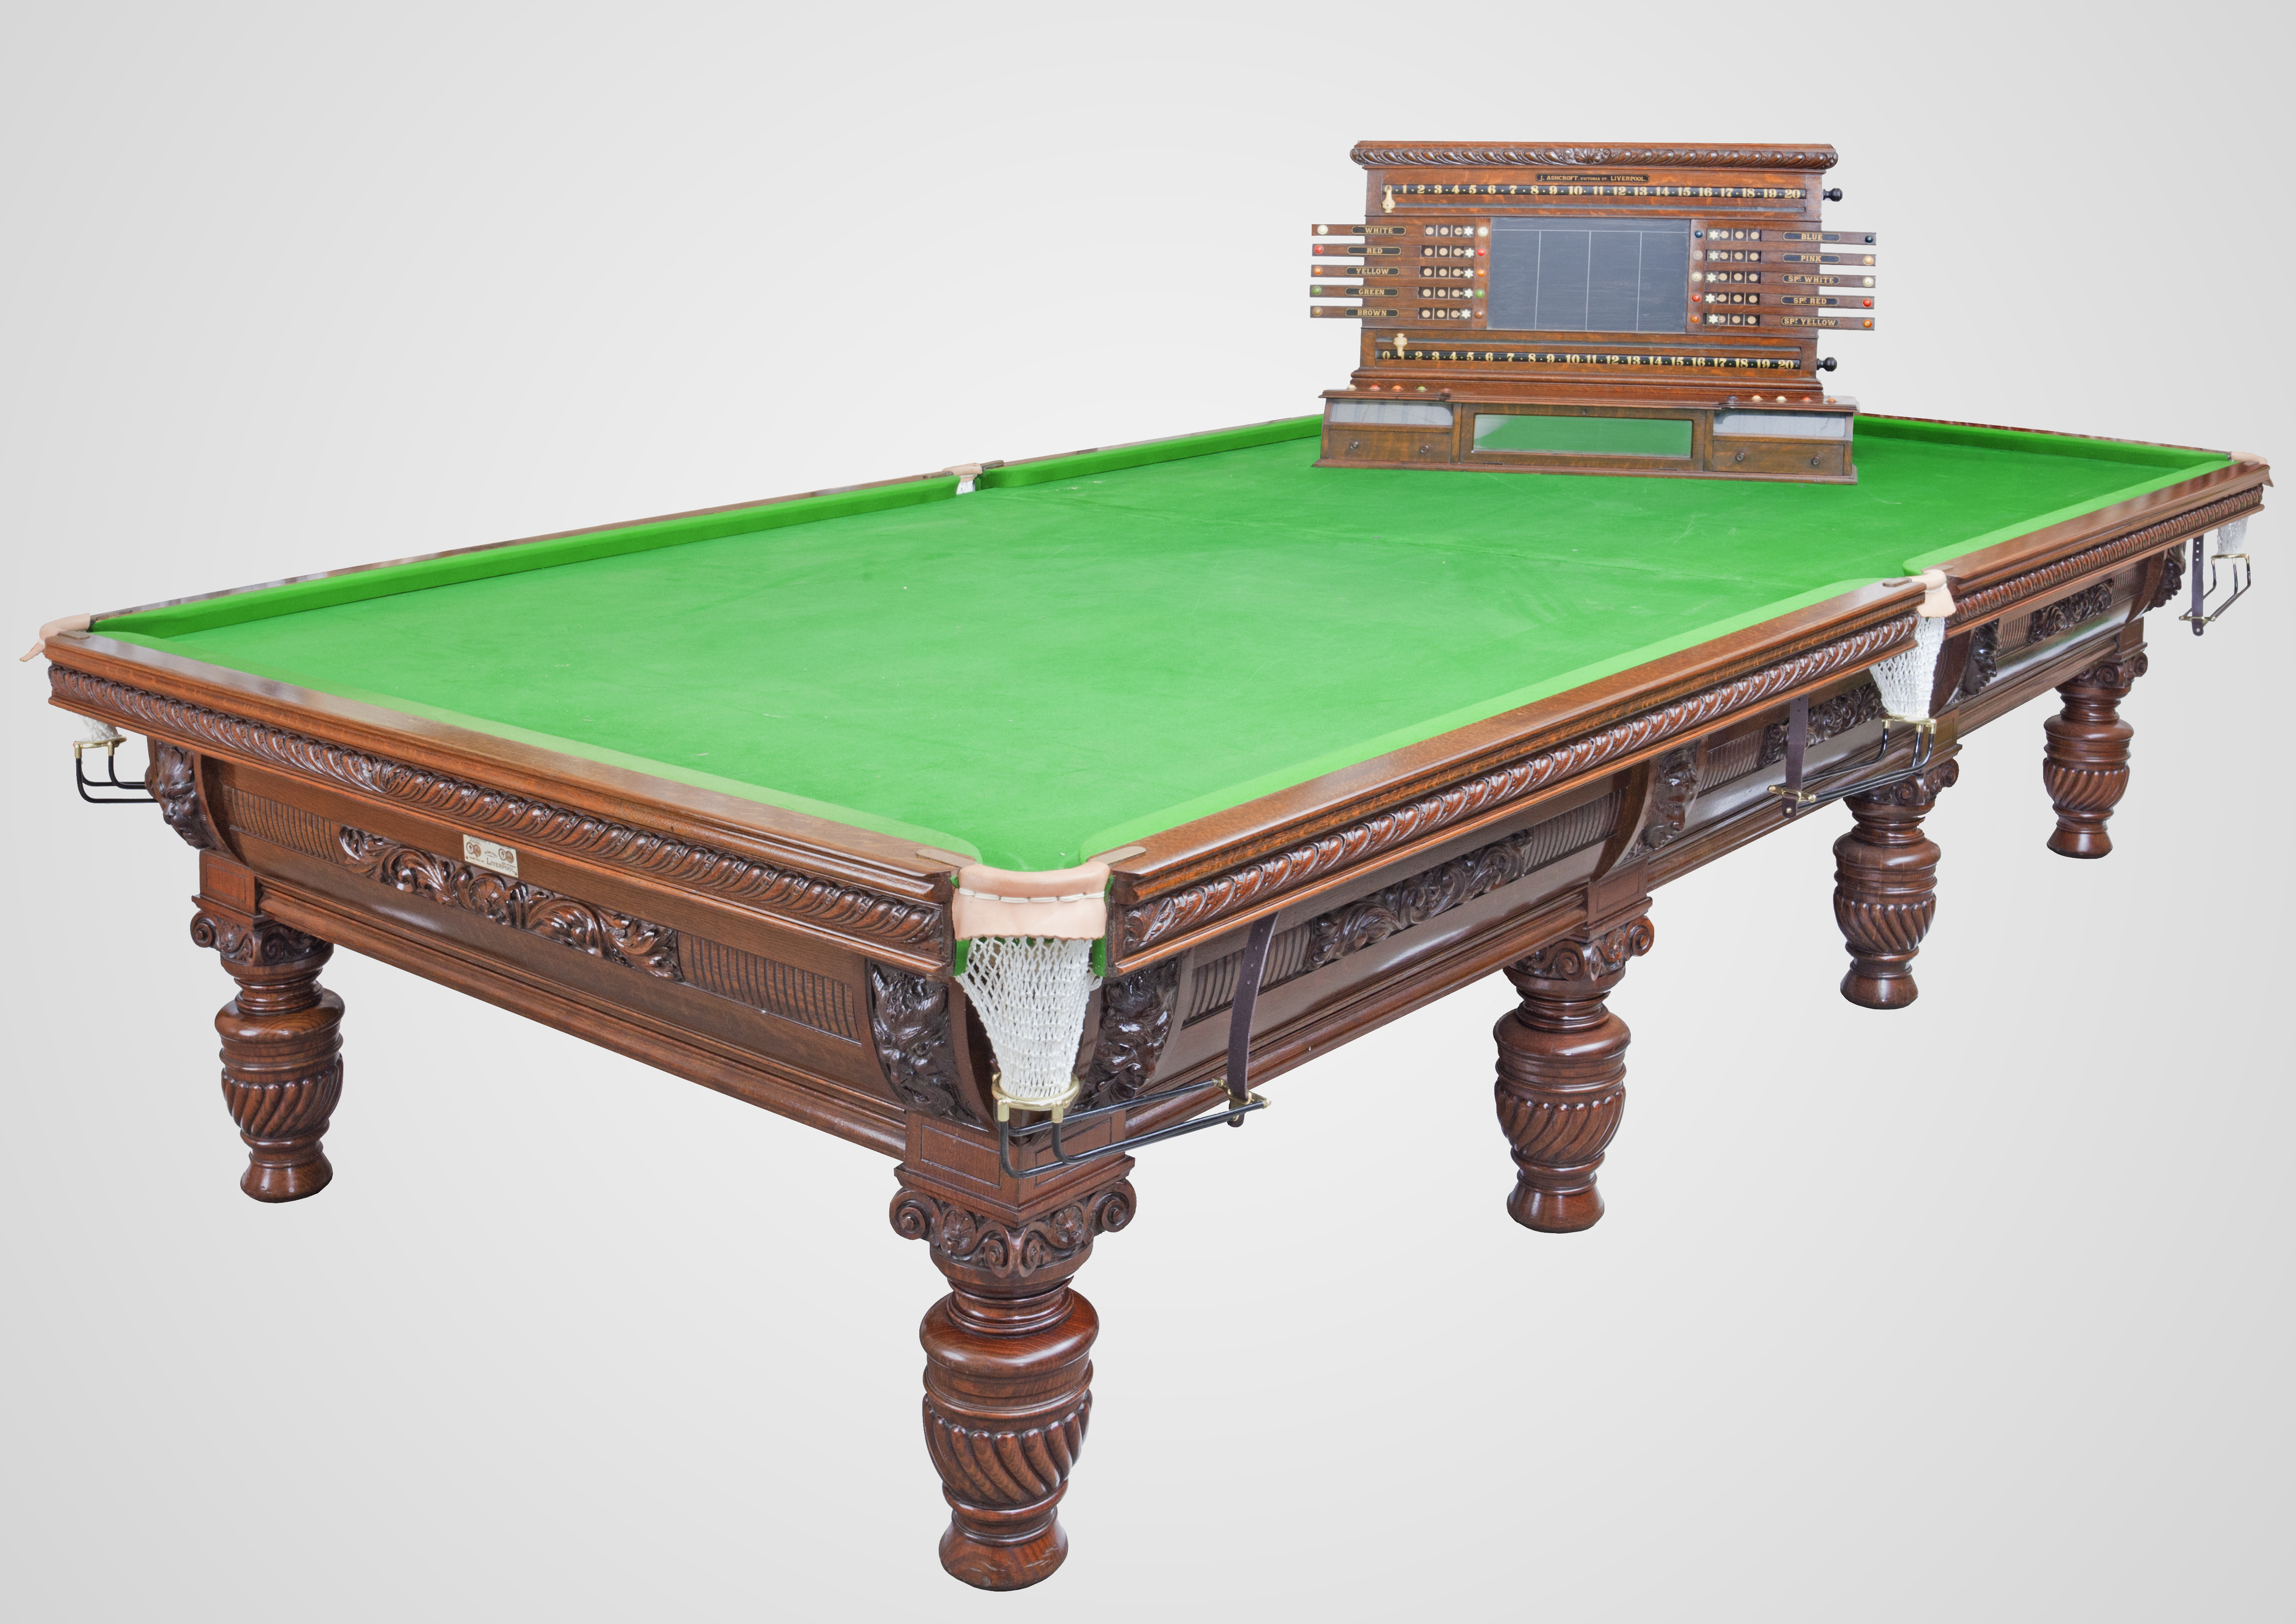 9d99f32528b4 Ashcroft Gold Medal Antique Billiard Table with life pool scoreboard ...